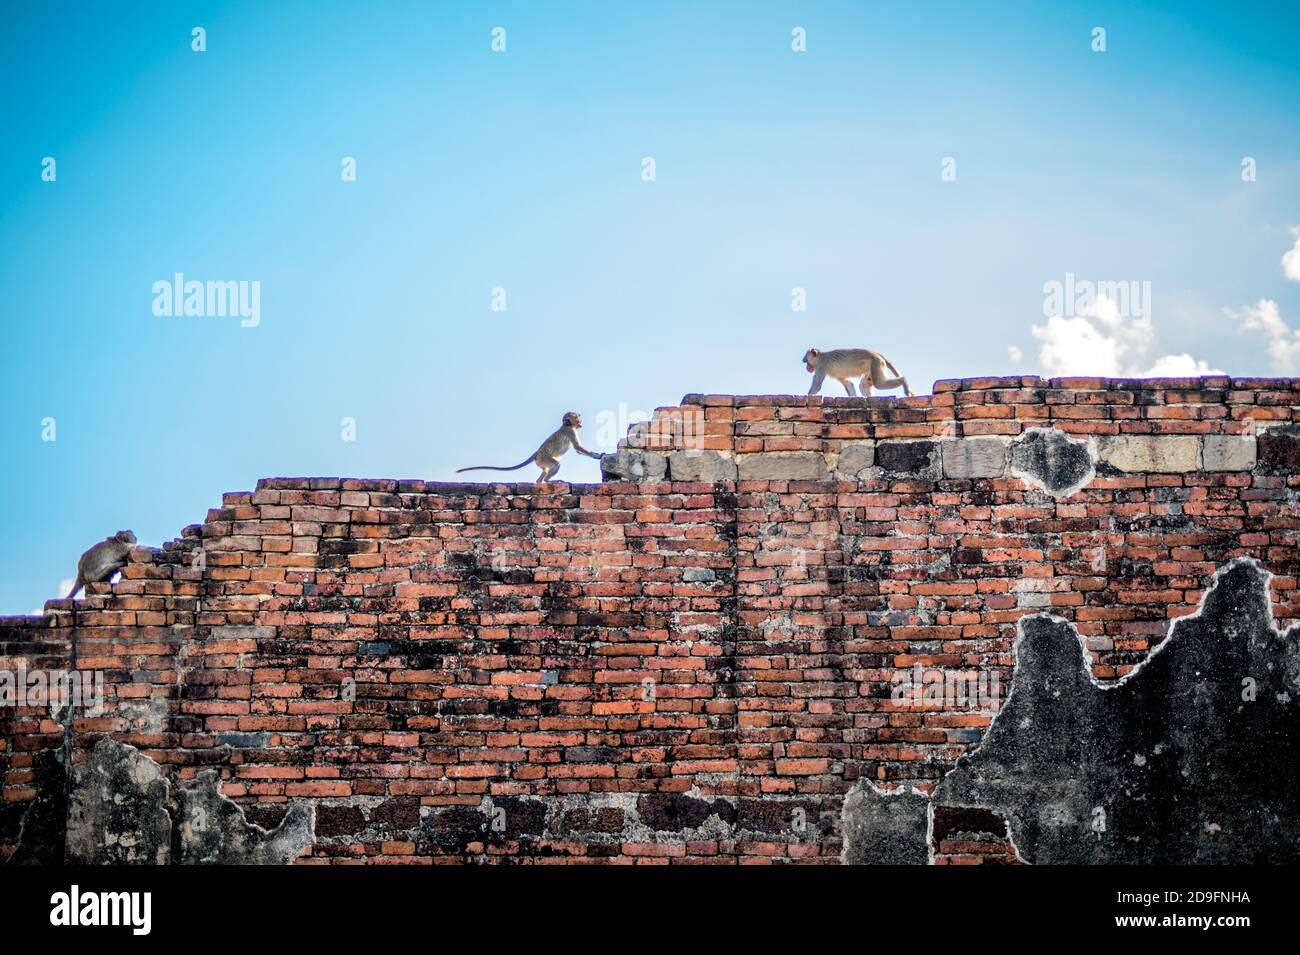 Monkeys On Houses High Resolution Stock Photography And Images Alamy